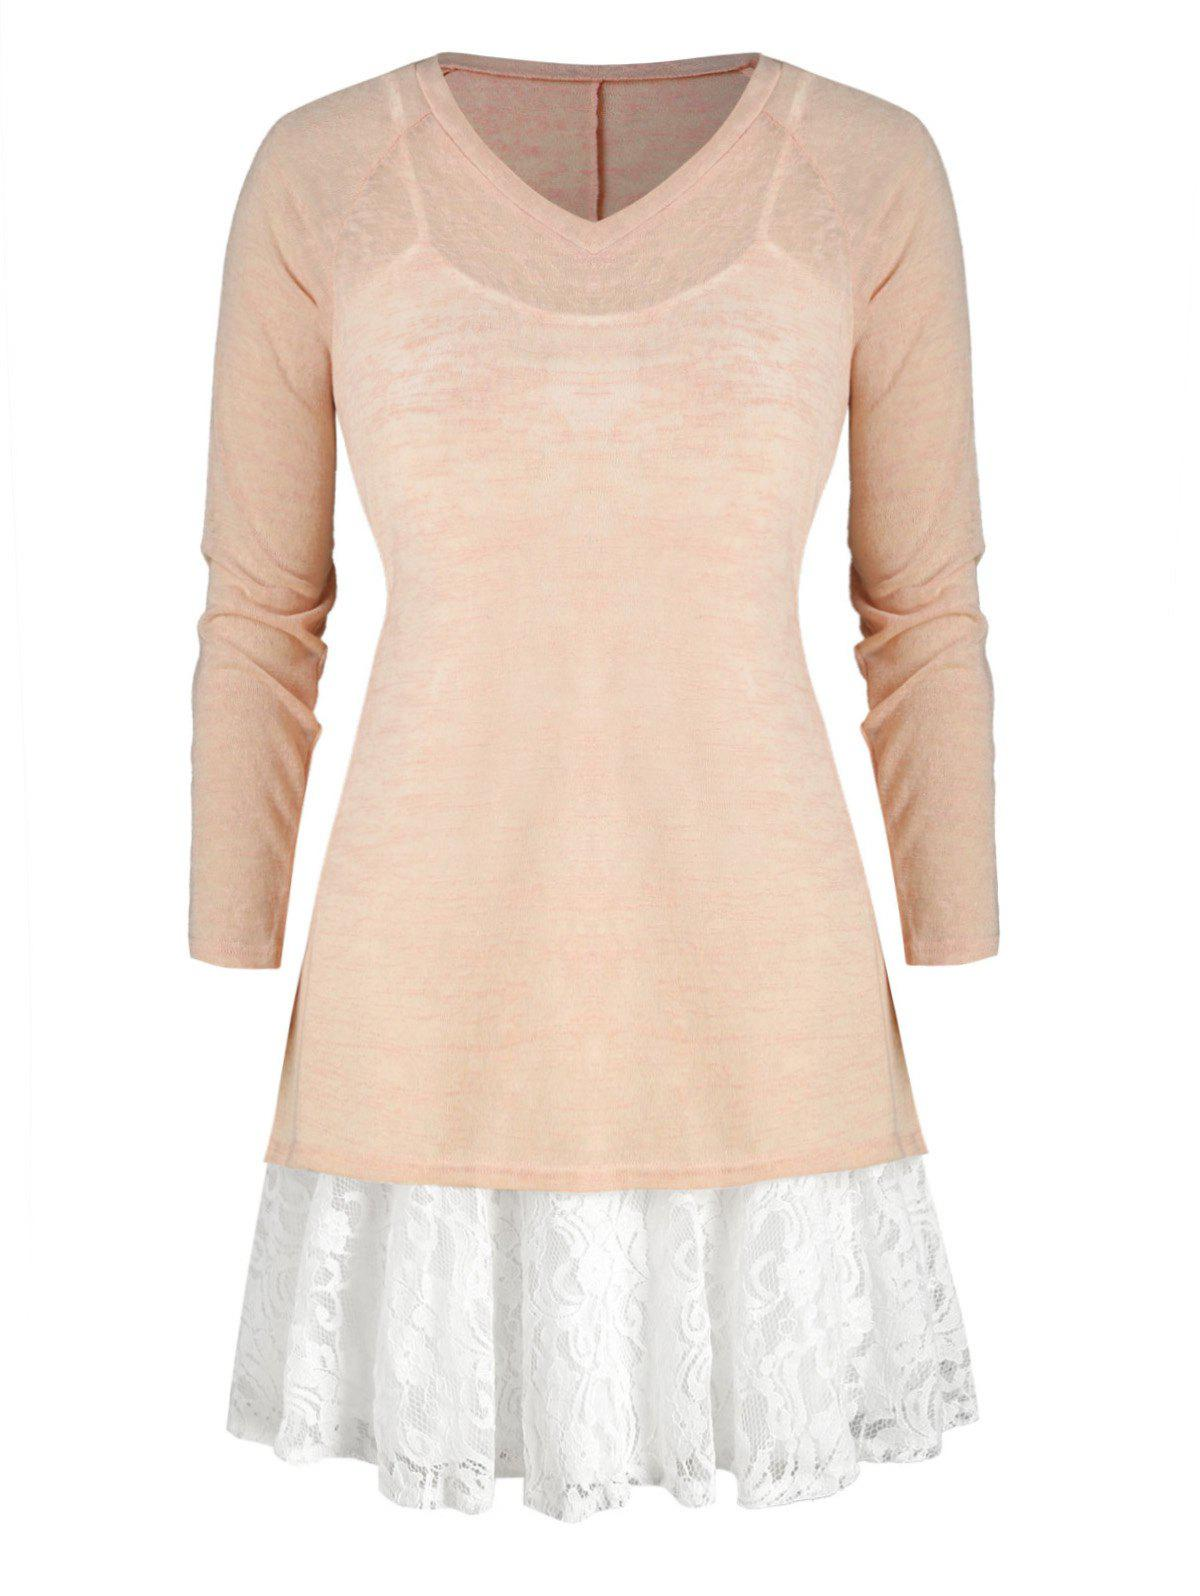 Plus Size Lace Panel Cami Dress And V Neck Knit Top - APRICOT L